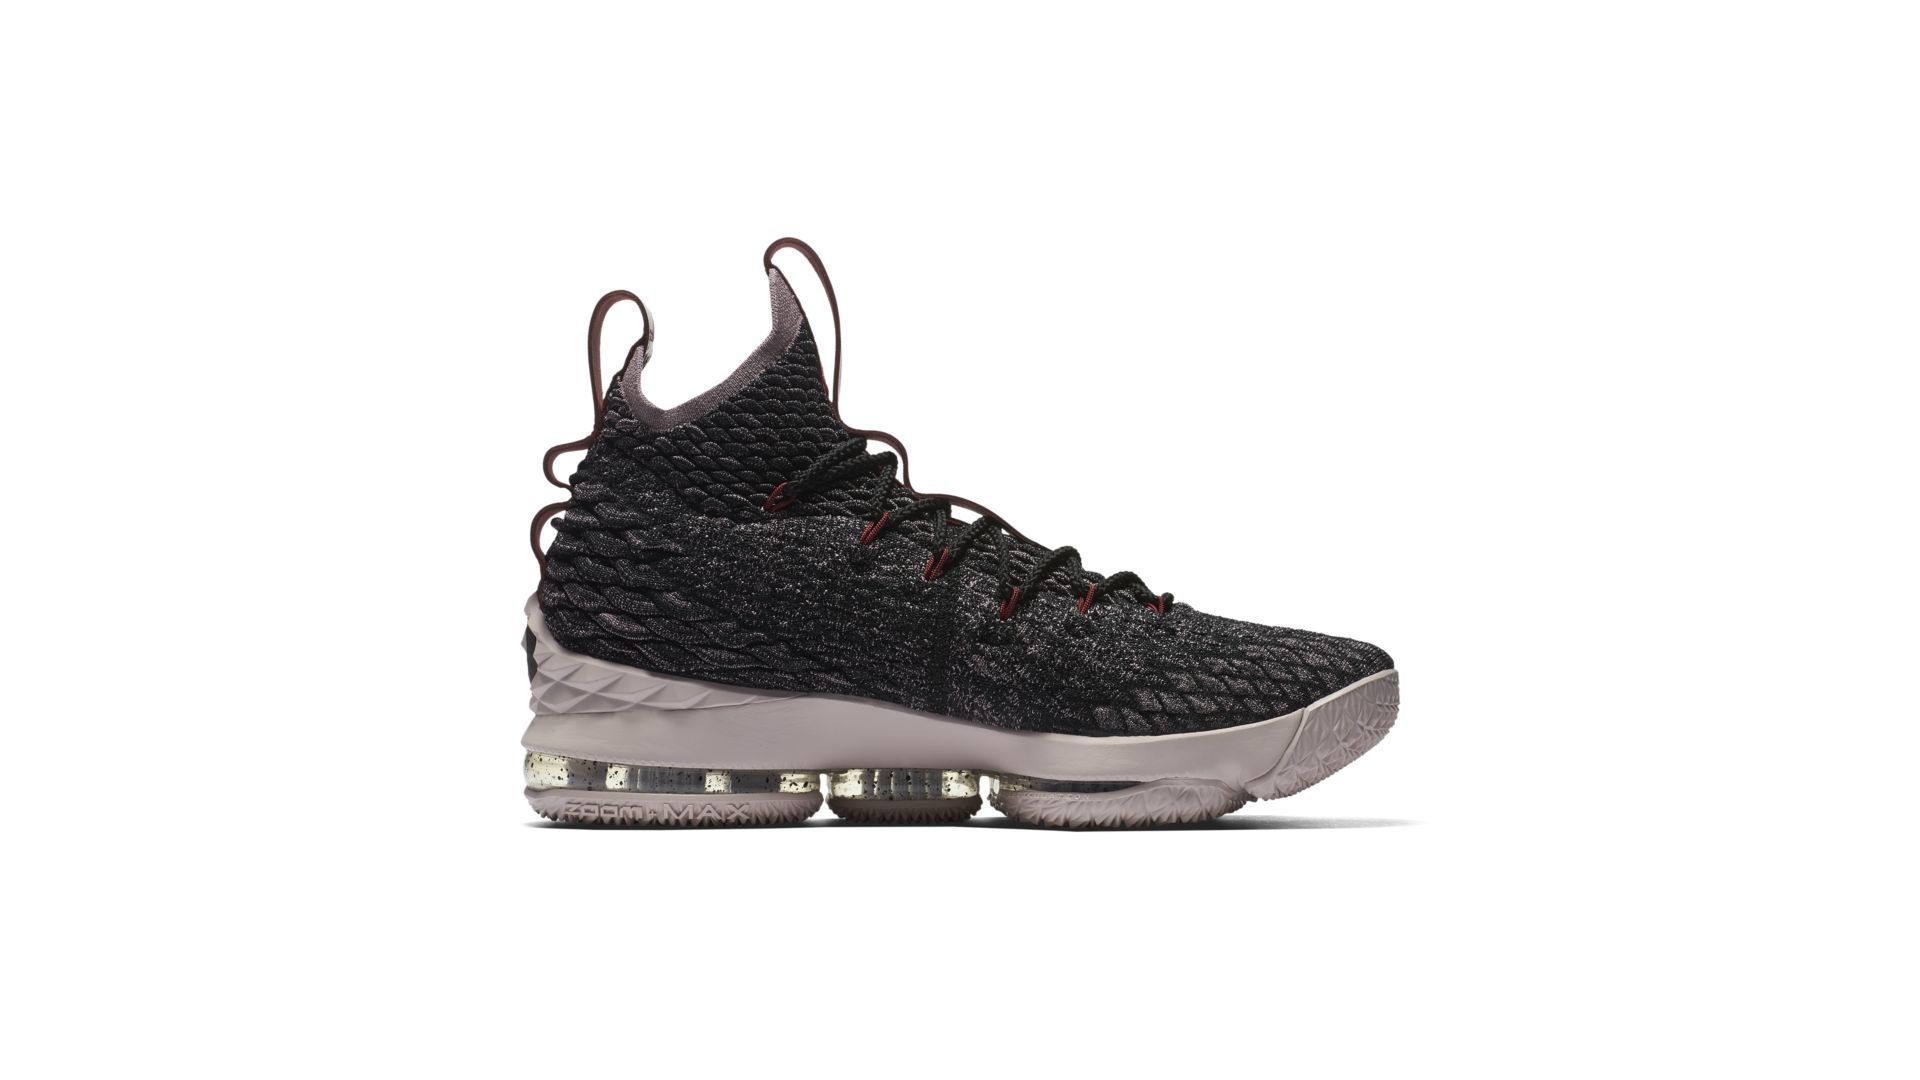 Nike LeBron 15 'Pride of Ohio' (897648-003)